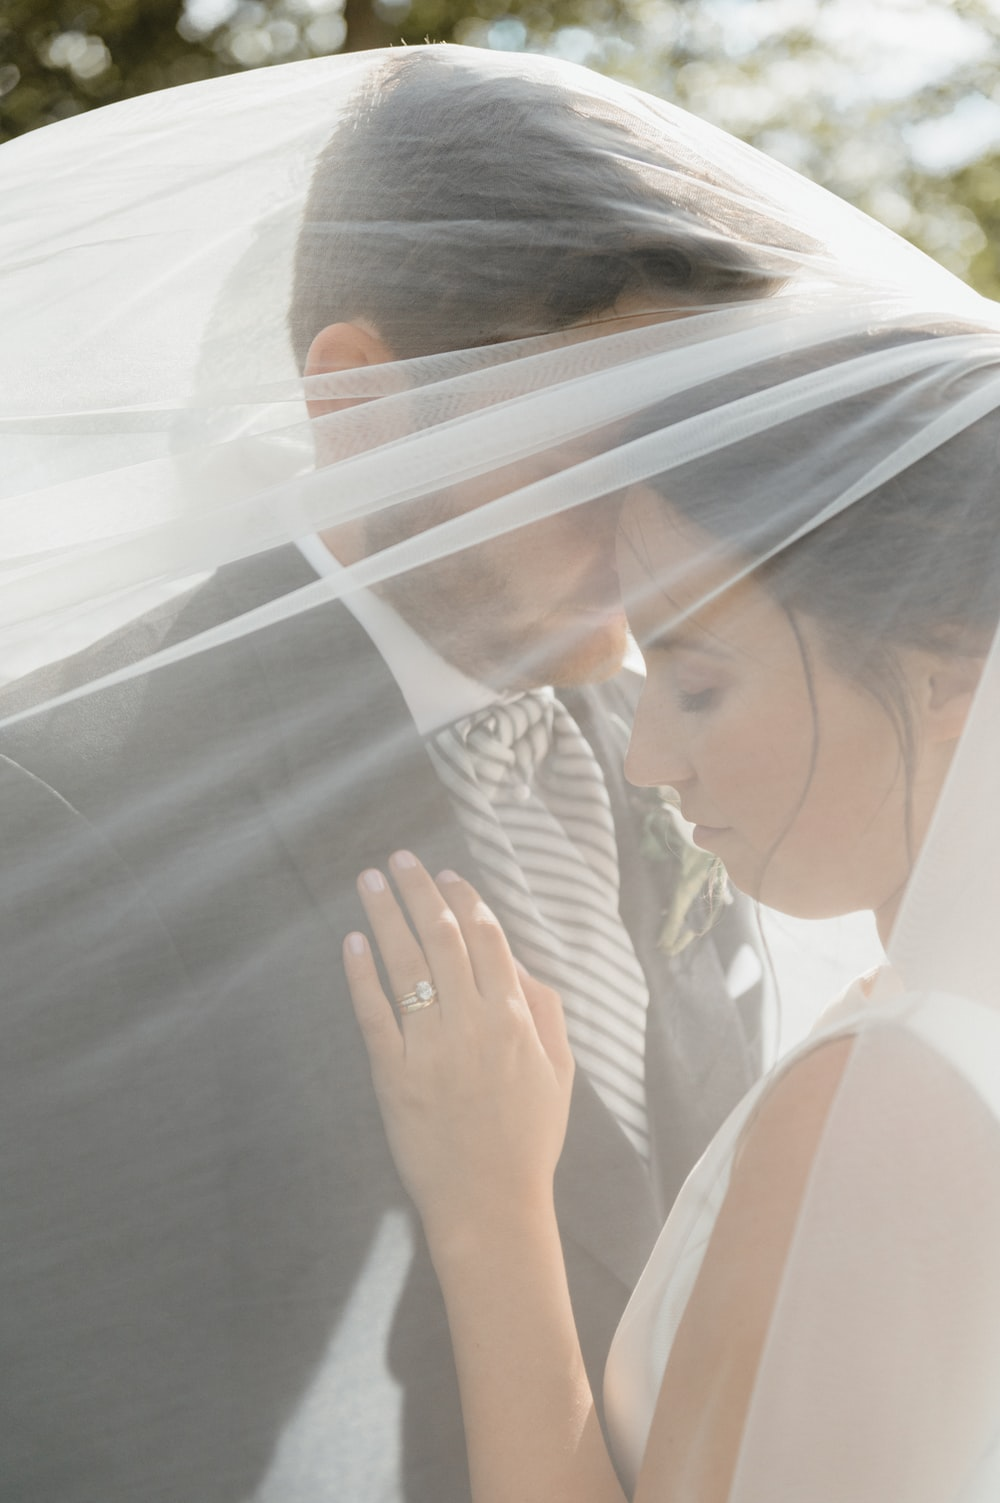 woman in white dress shirt covering her face with white veil